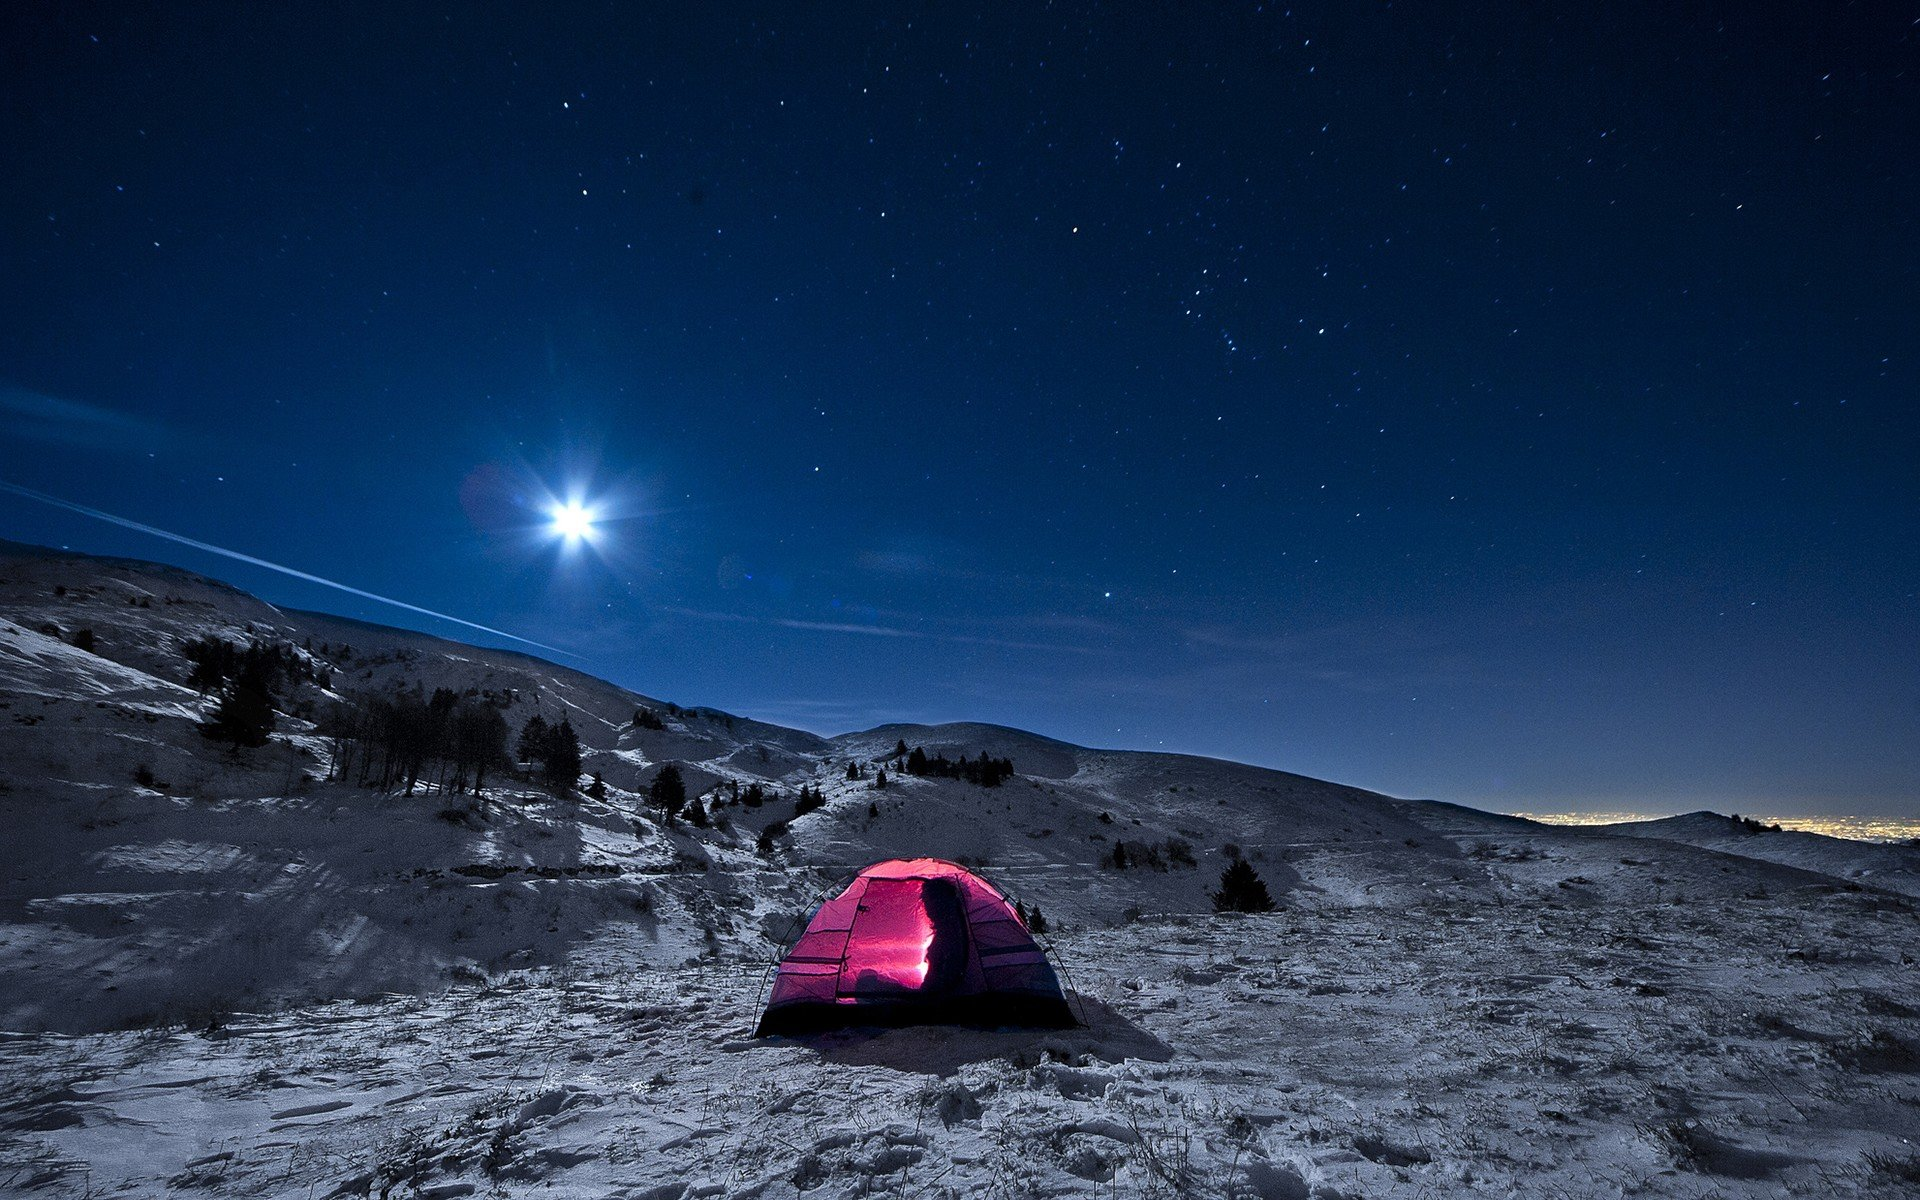 Camping Wallpapers Hd For Desktop Backgrounds